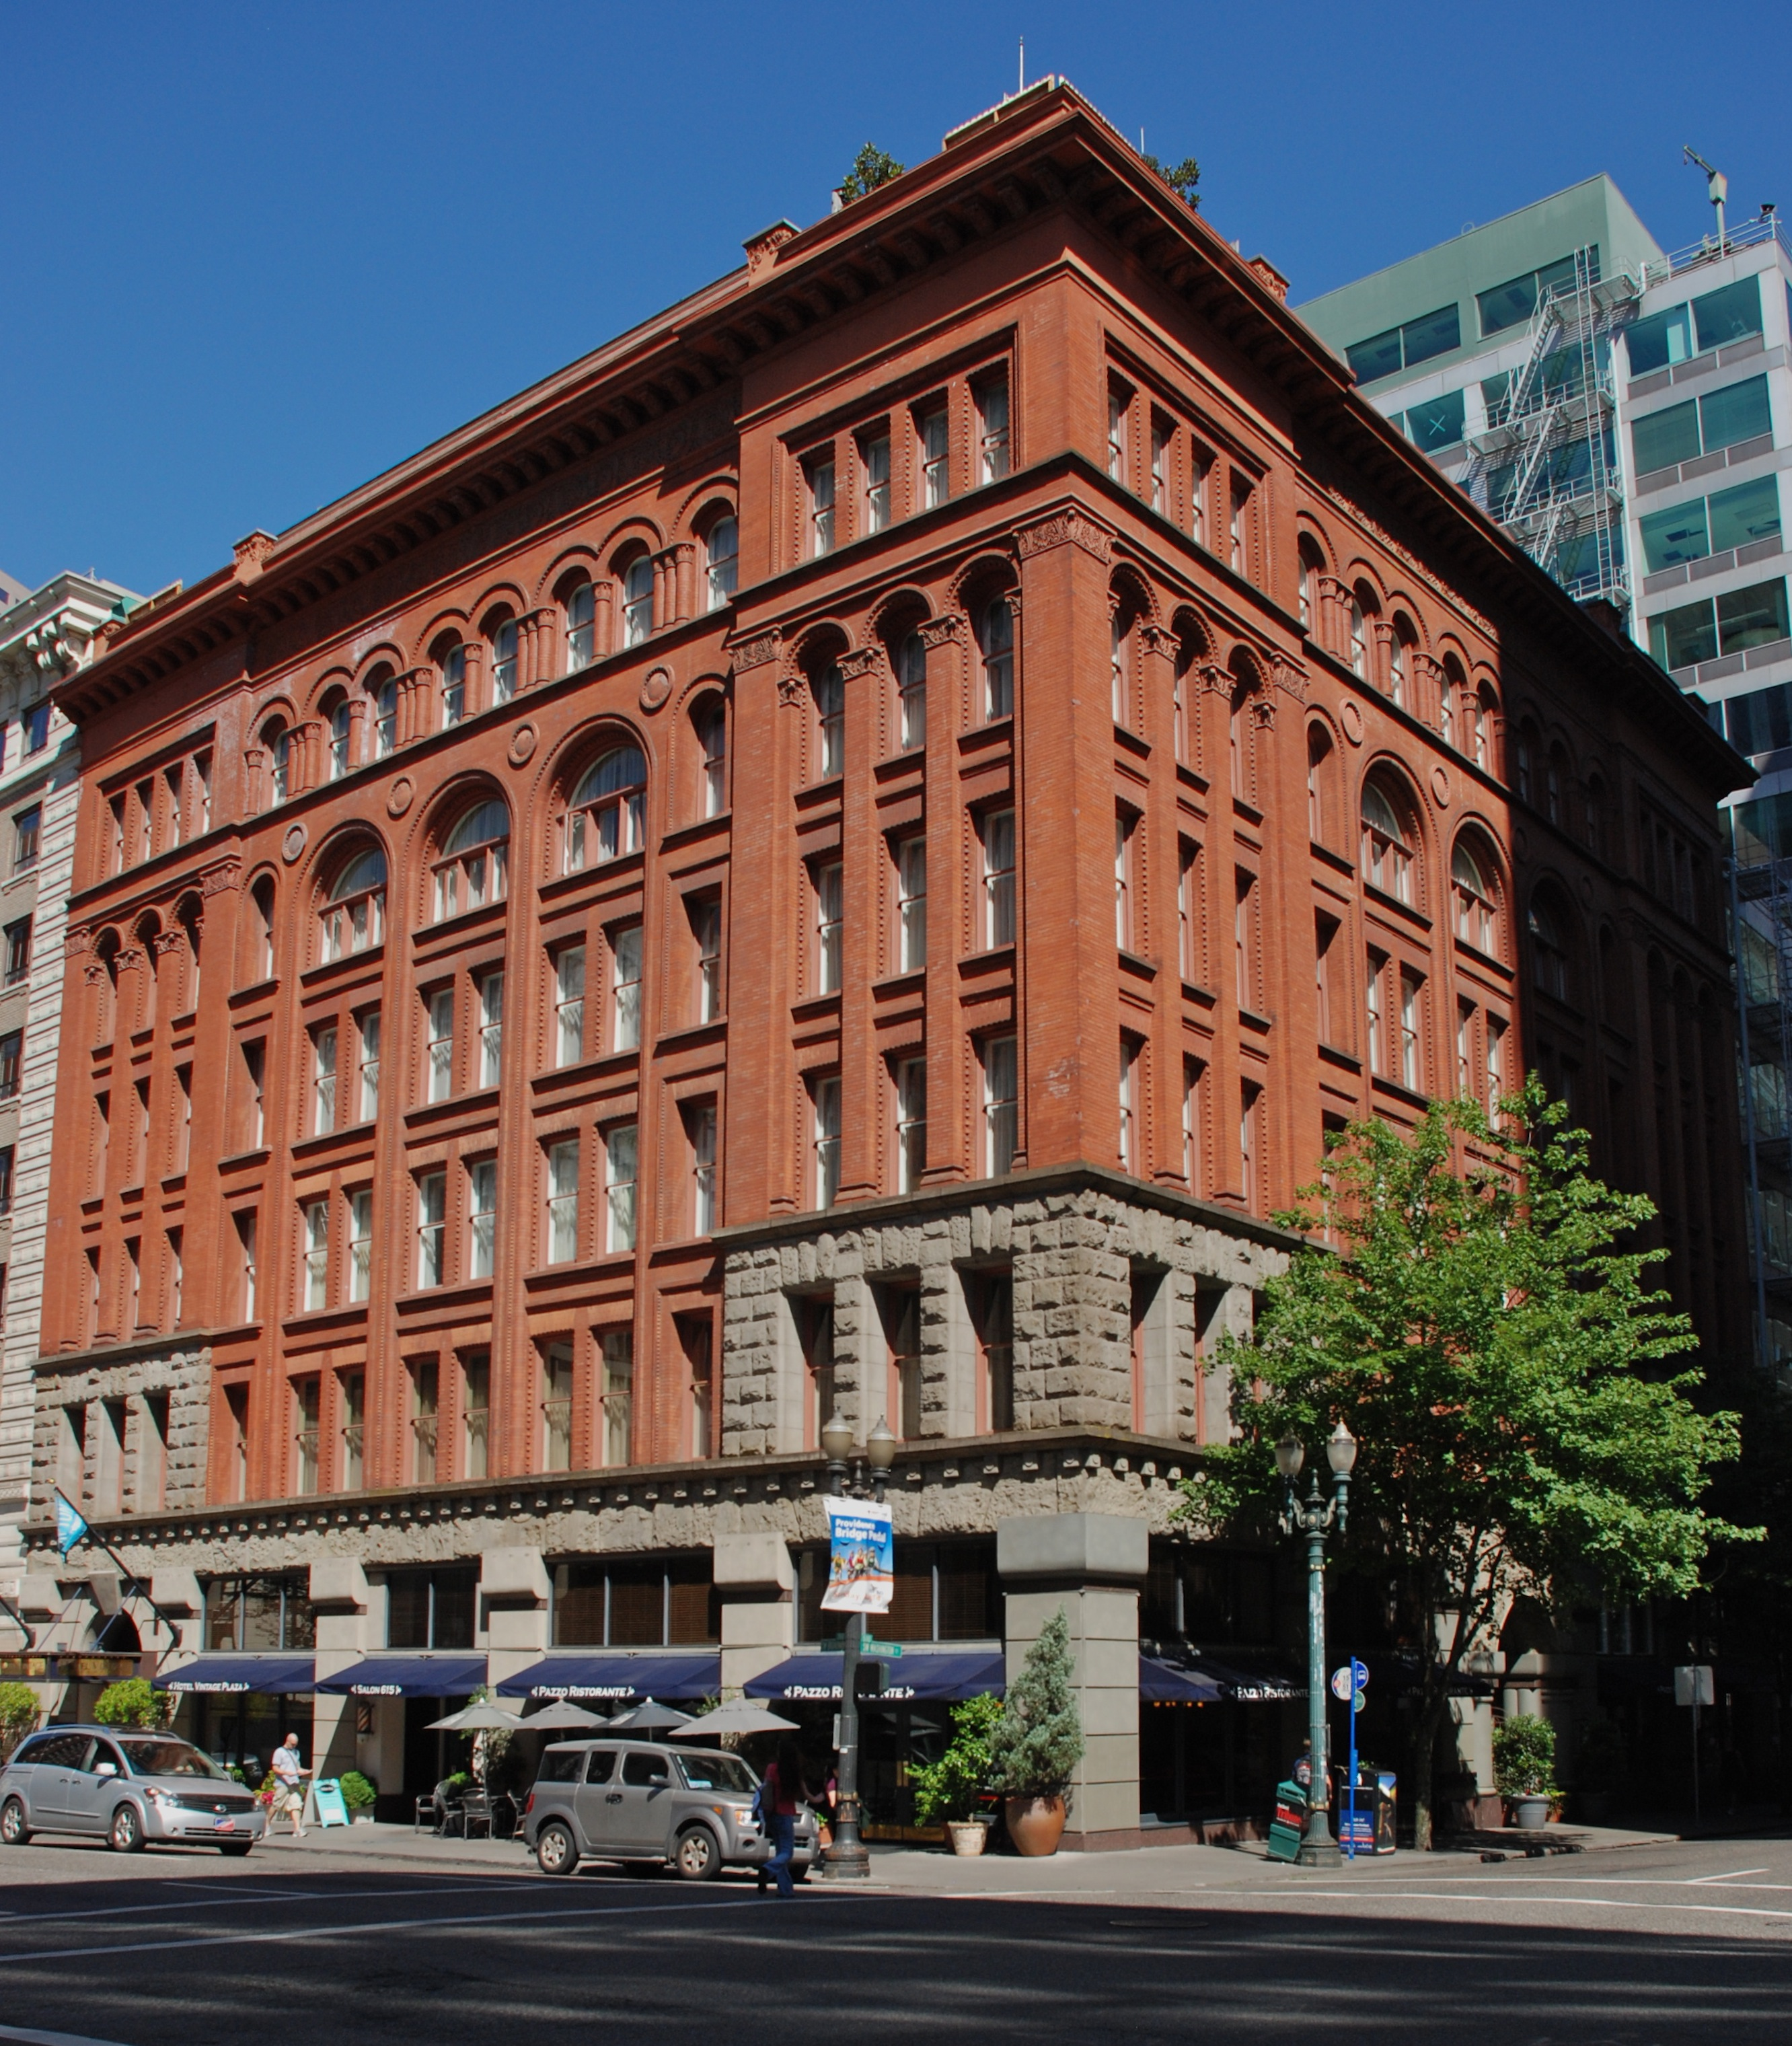 Completed in 1894, this historic building continues to serve as a hotel